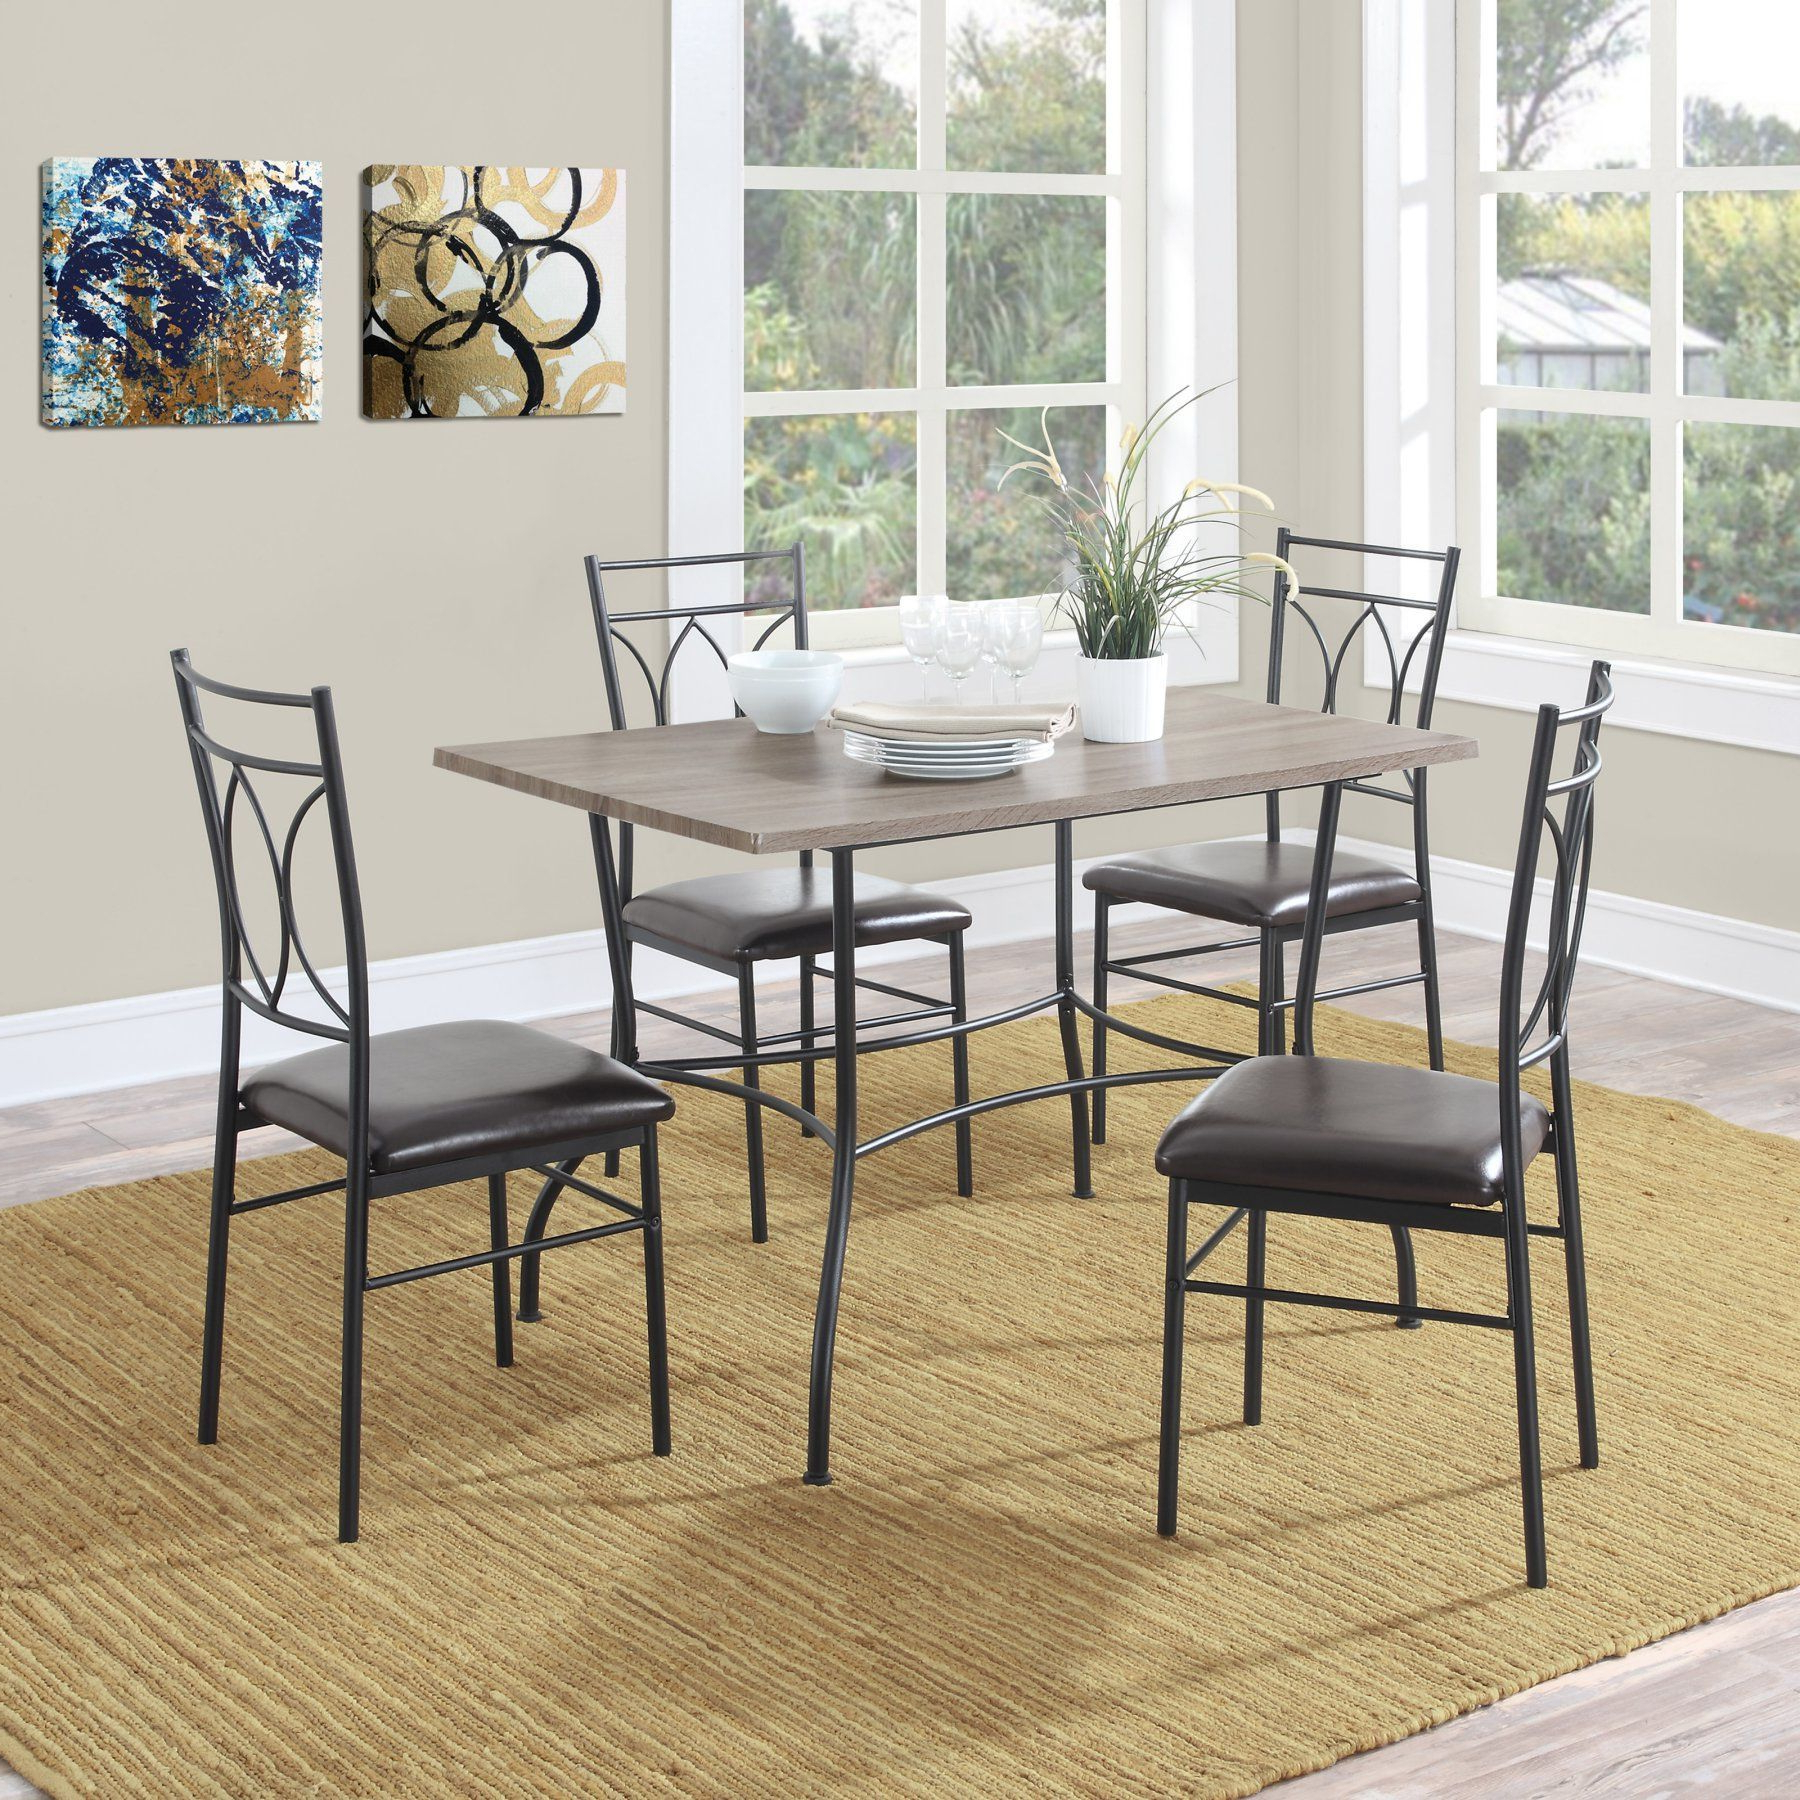 Wiggs 5 Piece Dining Sets With Trendy Dorel Living Shelby 5 Piece Rustic Wood & Metal Dining Set (View 23 of 25)